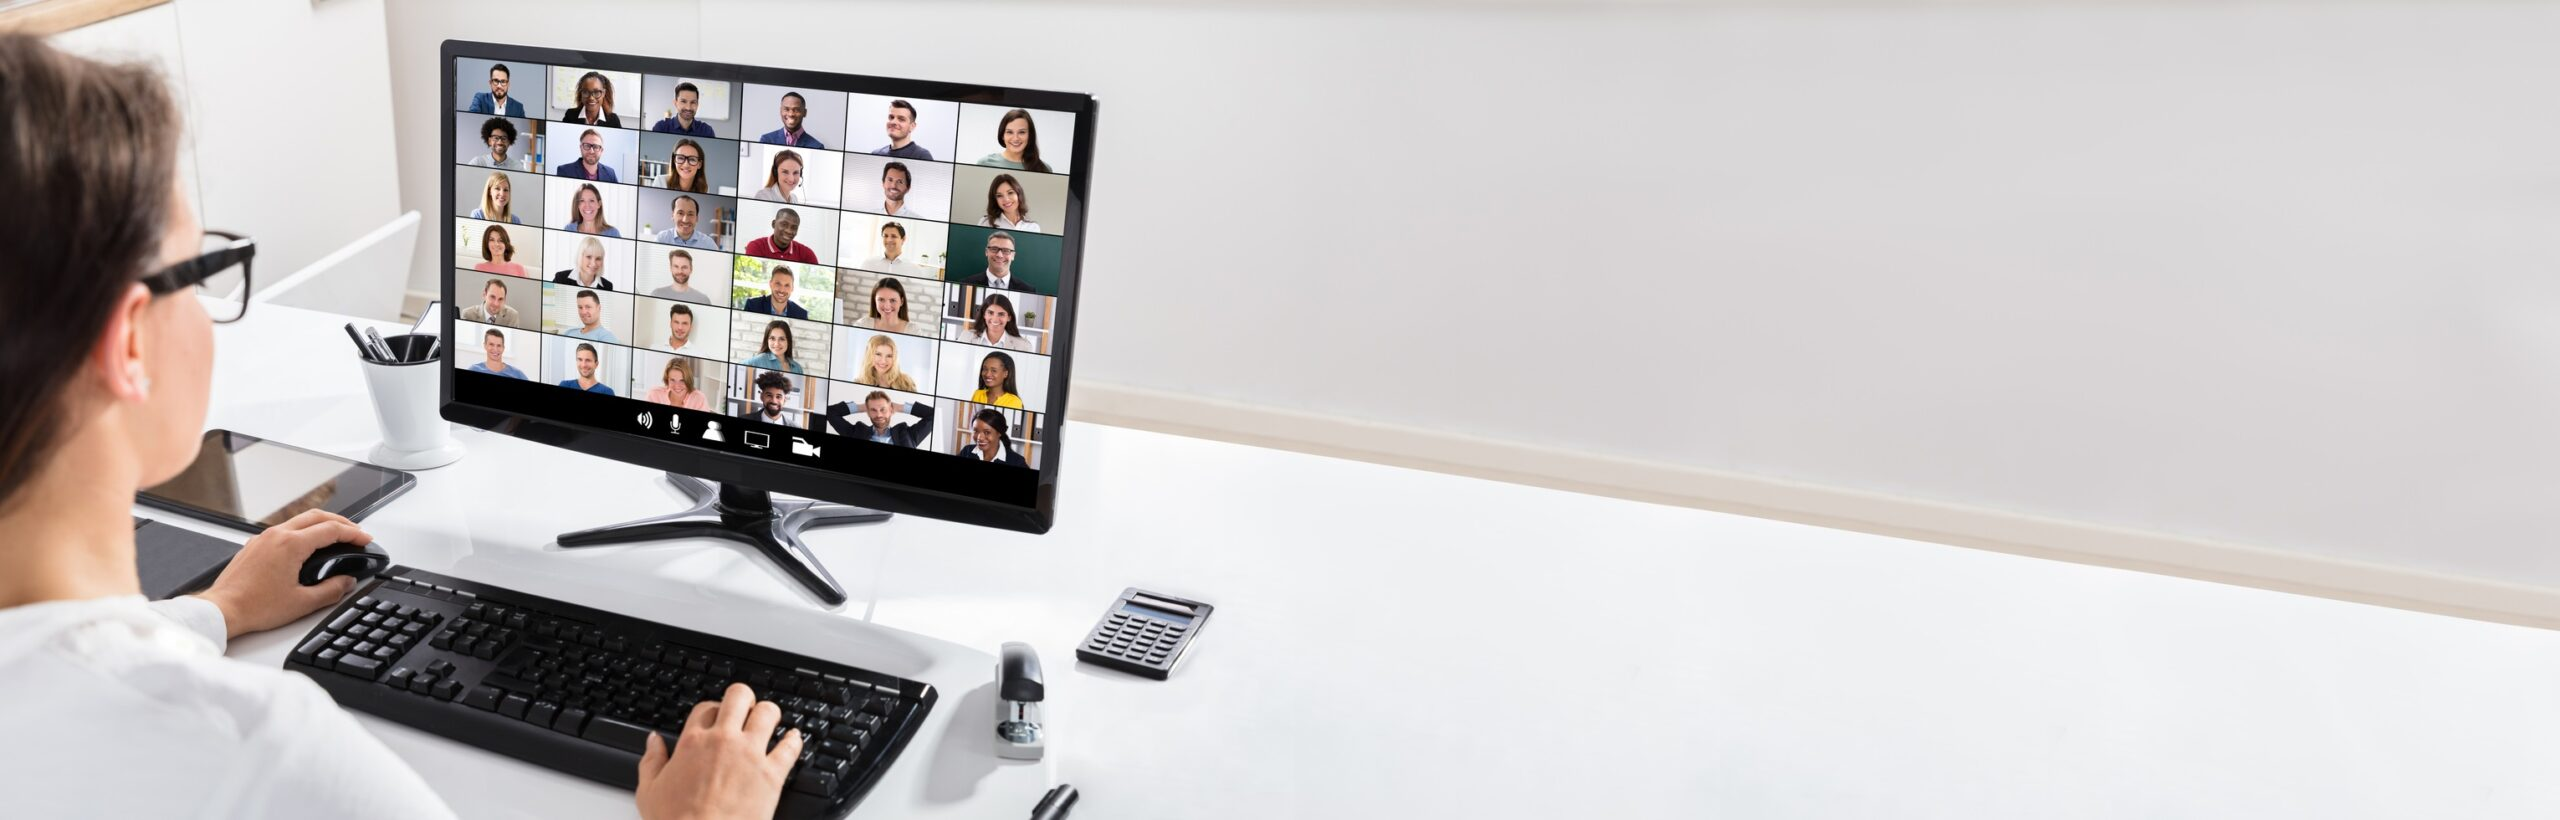 Photo of business woman on a Zoom call